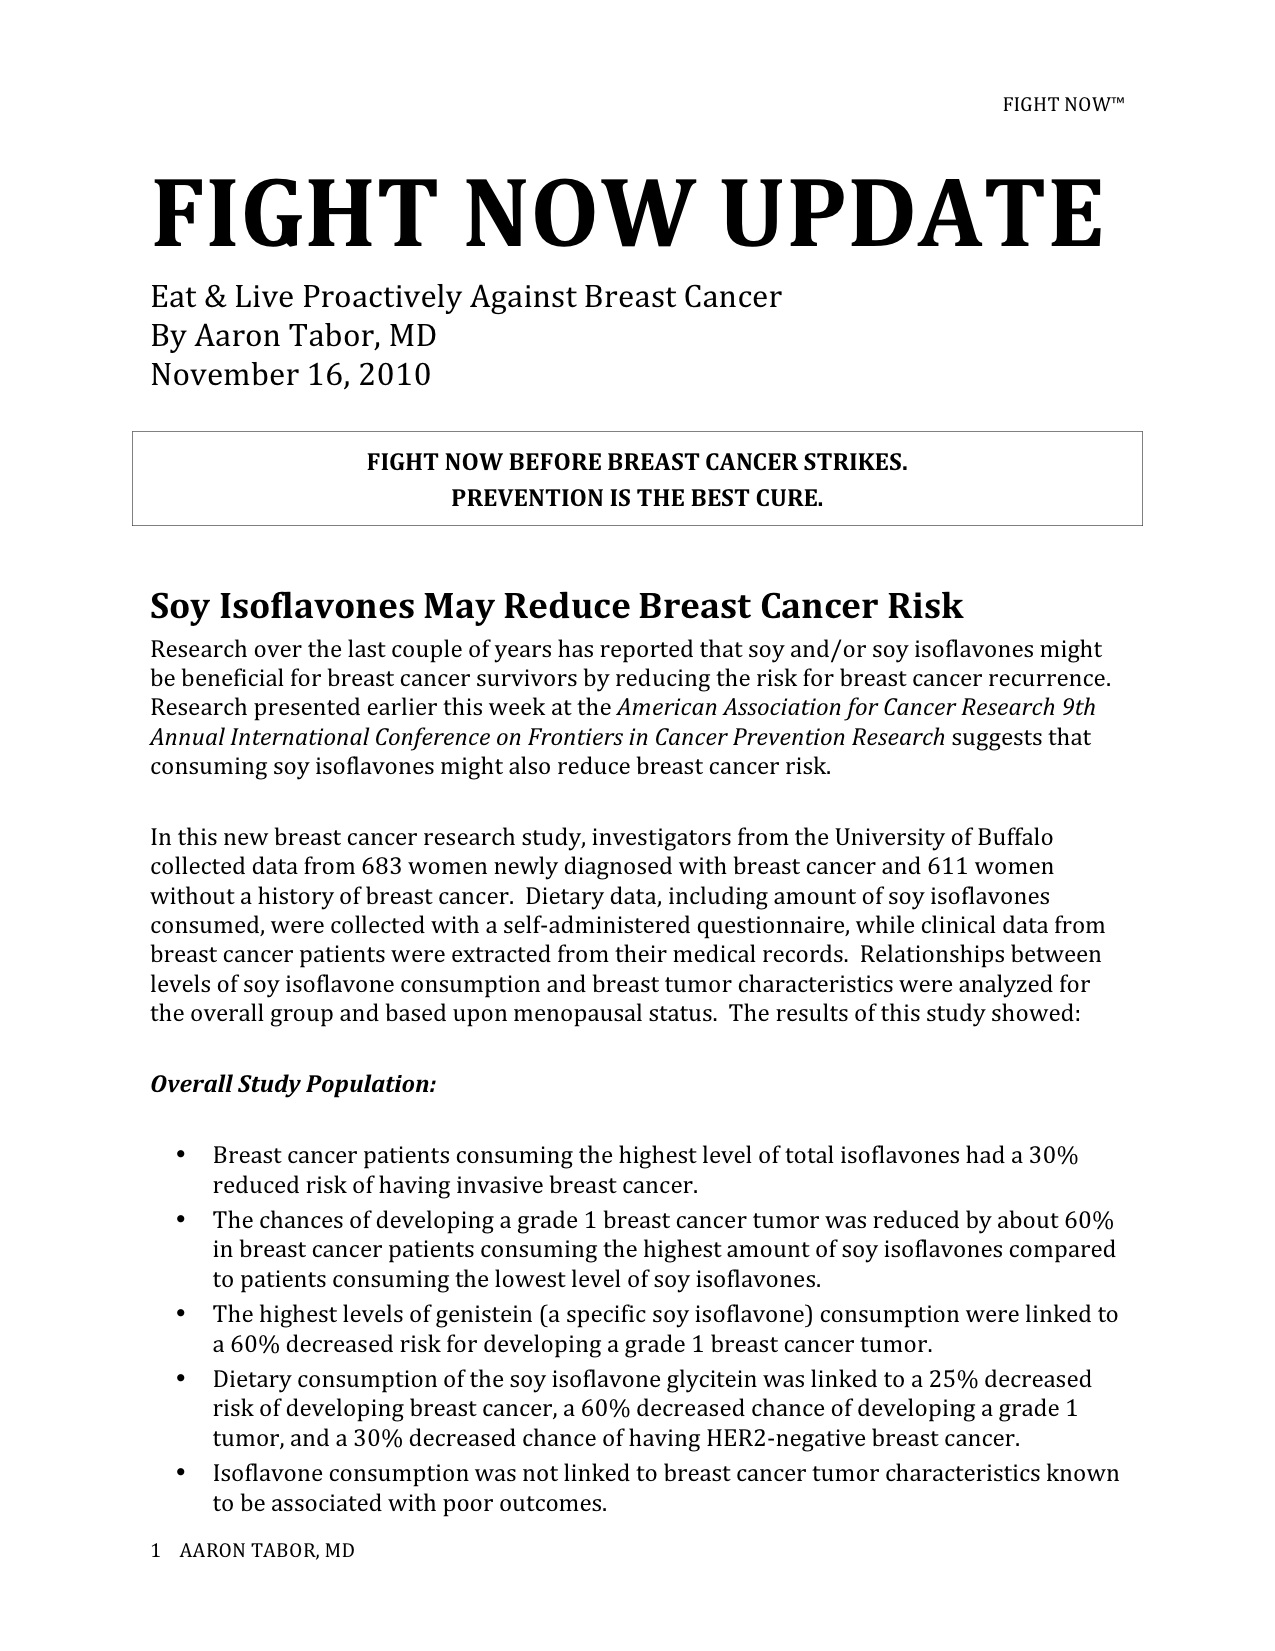 Fight Now Breast Cancer Newsletter - November 16th, 2010